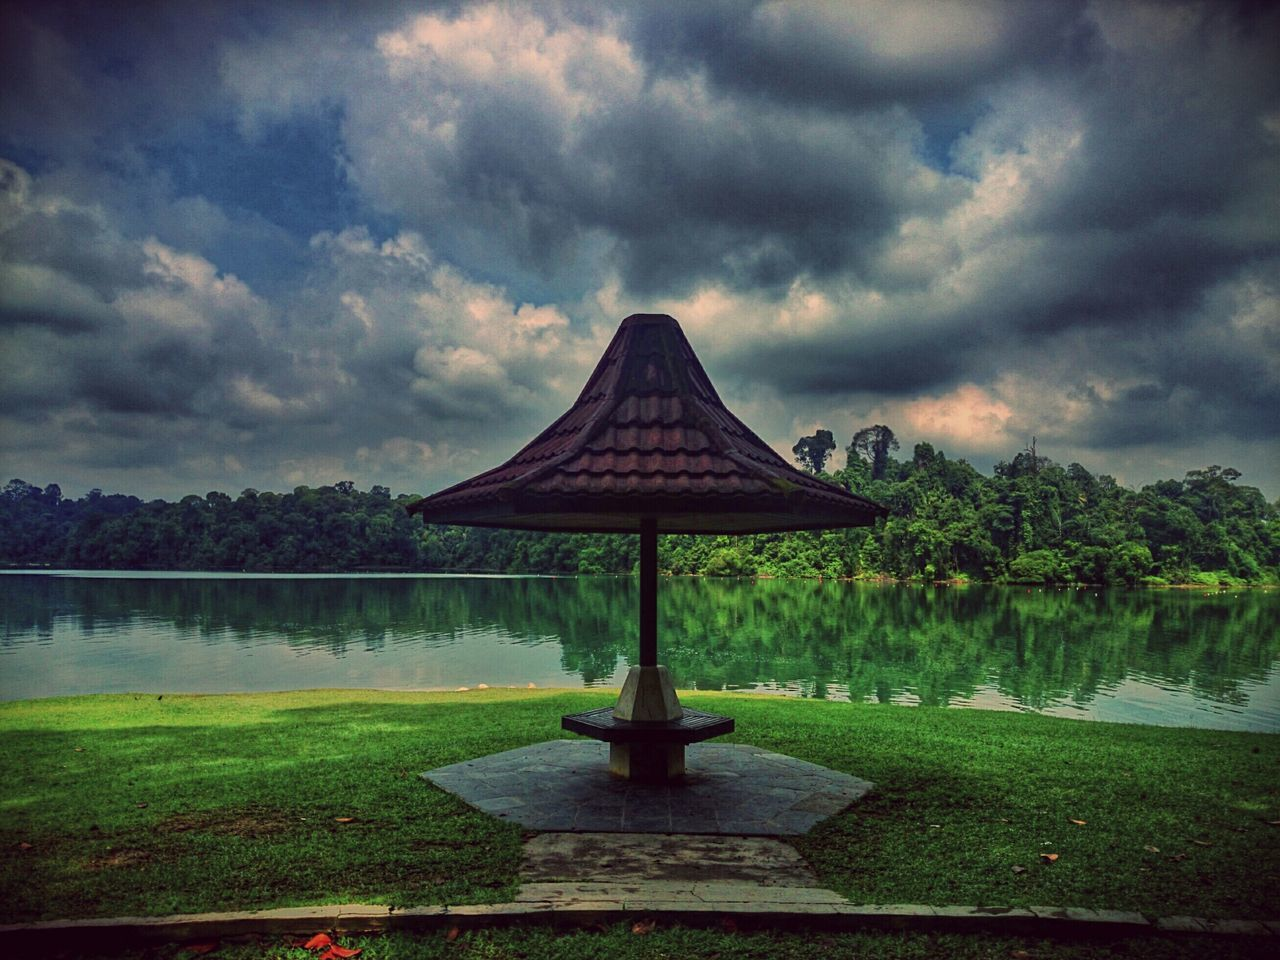 Gazebo In Front Of Lake Against Cloudy Sky At Dusk